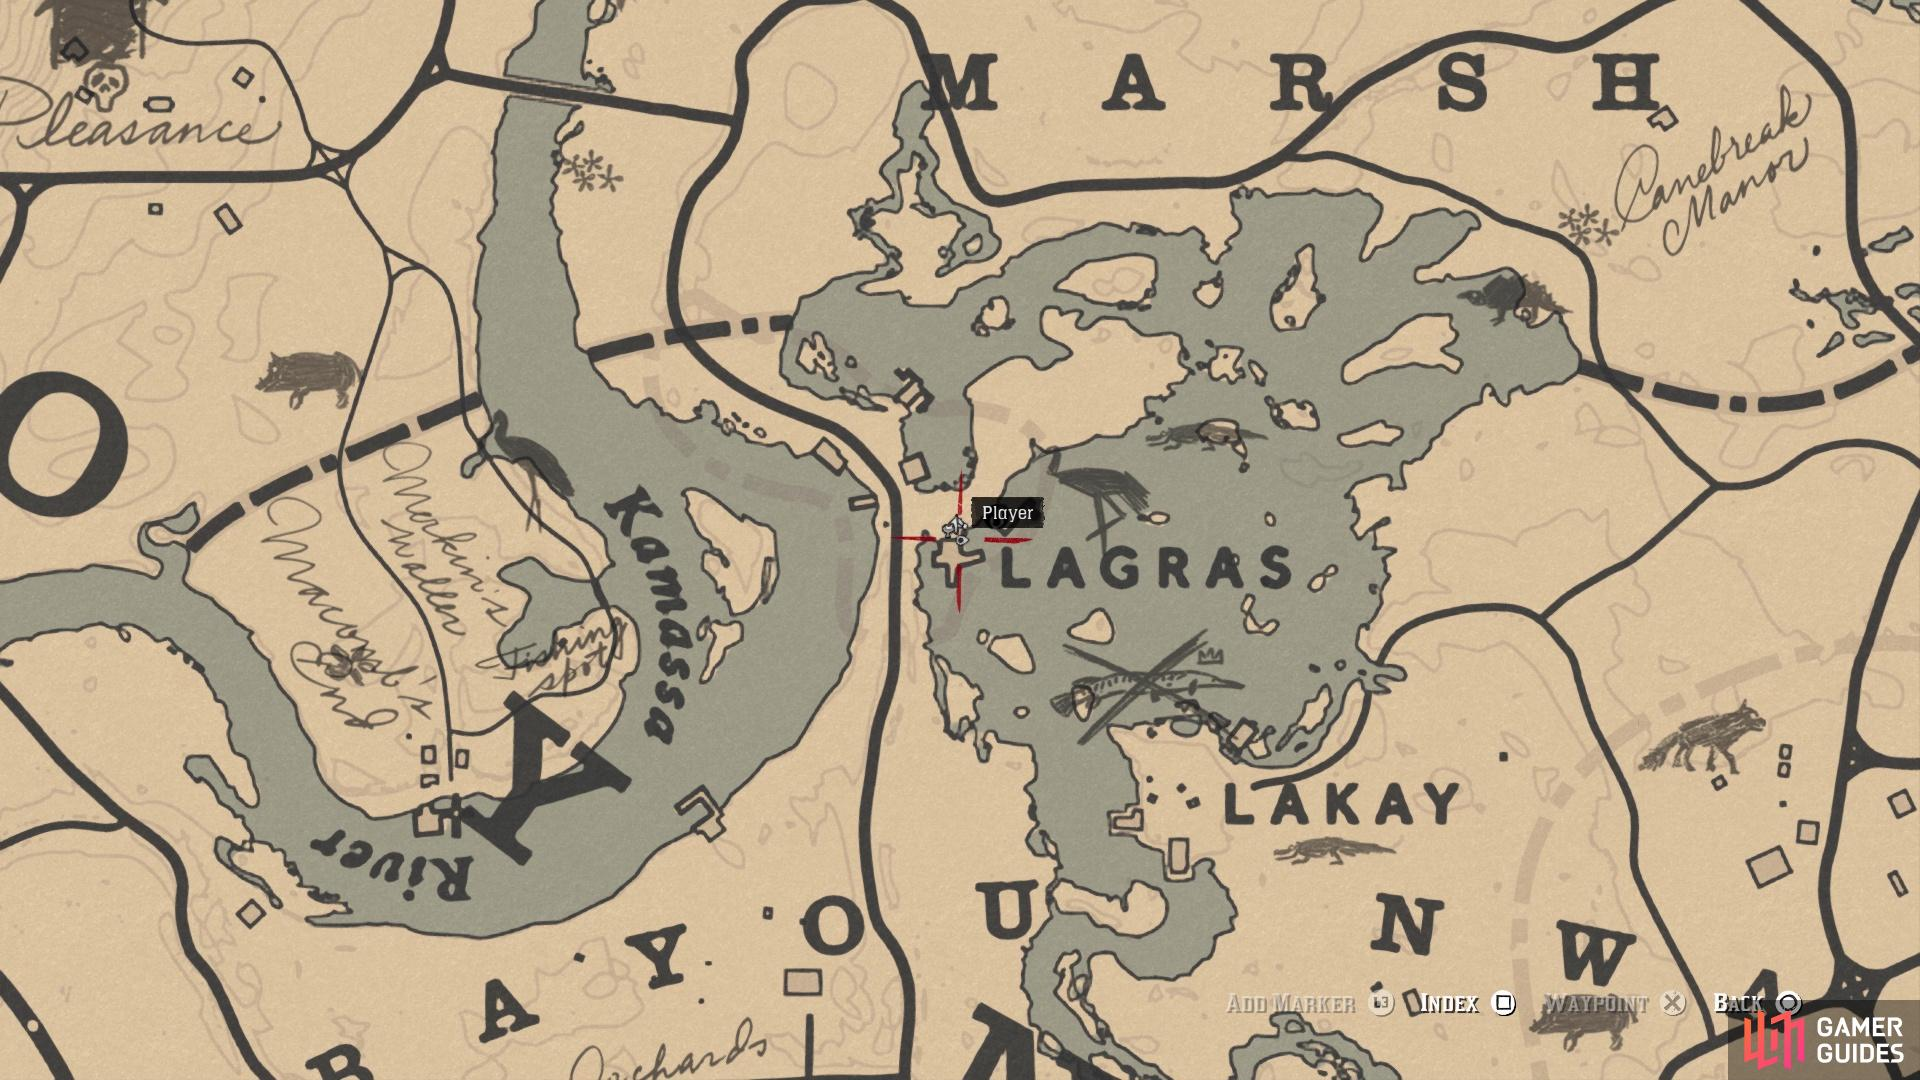 The location of the President Hardin card on the map